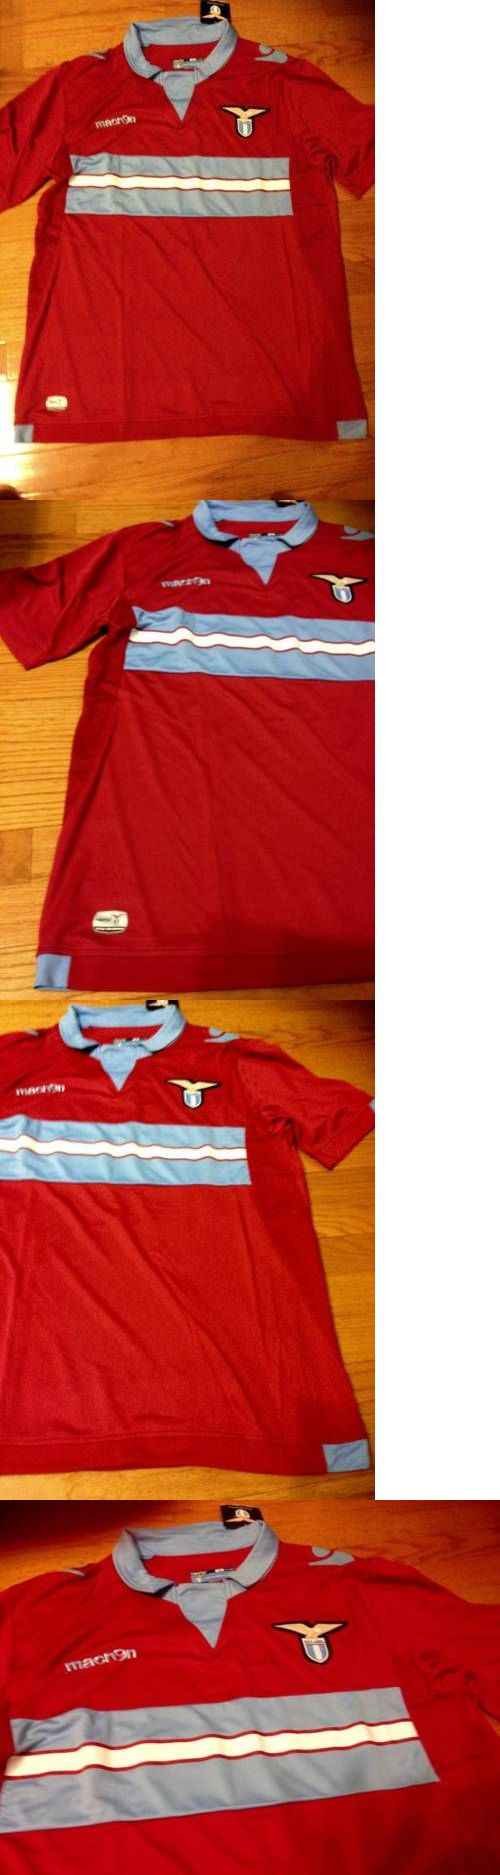 Soccer-Other 2885: Nwt Mens Dimitri Payet West Ham Home Polo Collar Shirt Soccer Jersey Md -> BUY IT NOW ONLY: $79.99 on eBay!